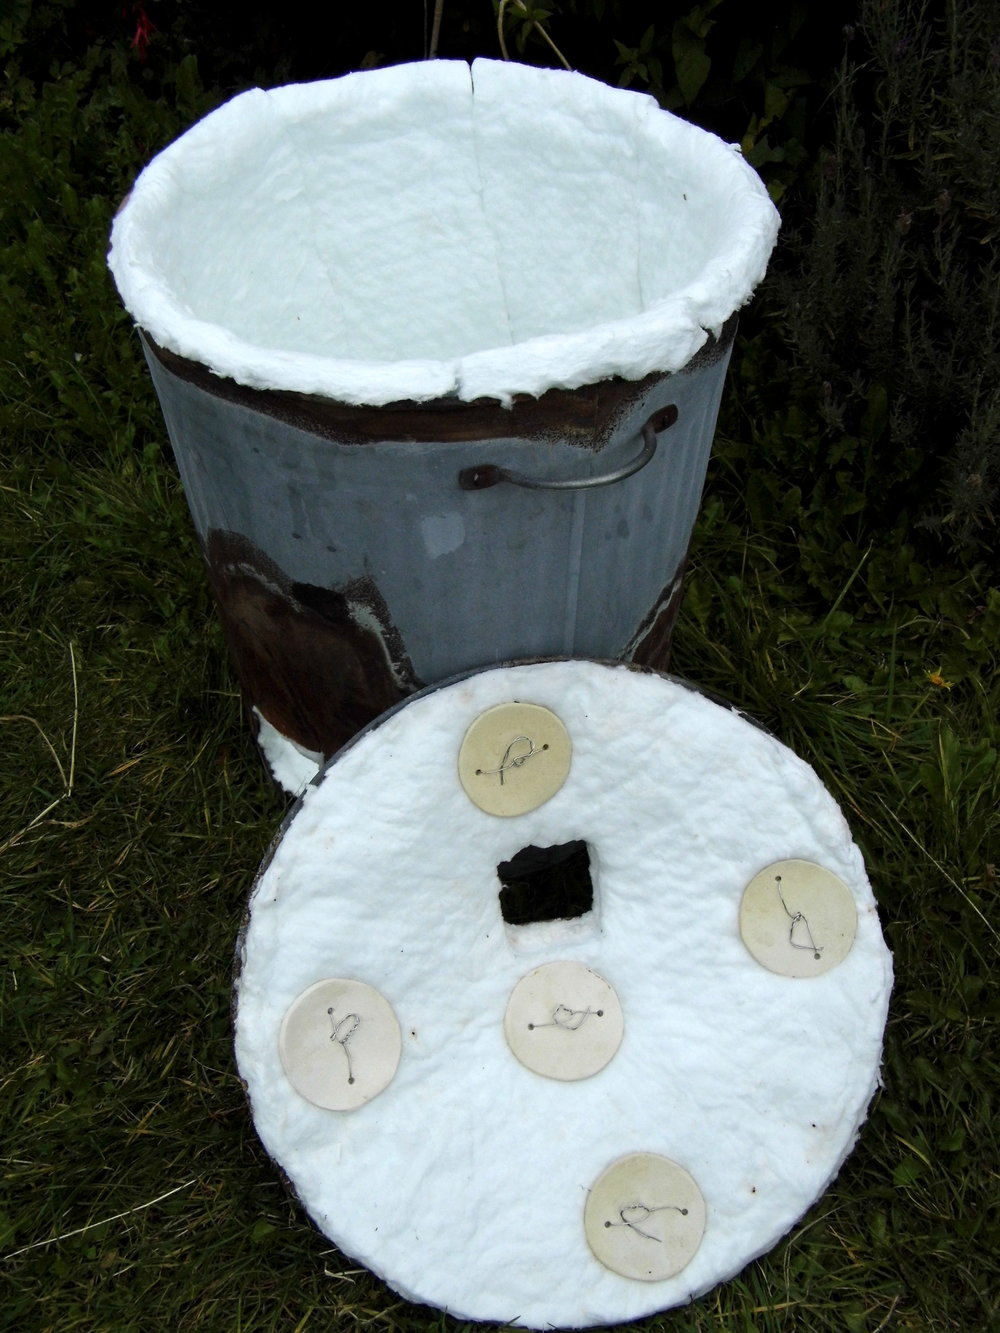 5. Strips of ceramic fibre are cut to line bin vertically, they will hold themselves in place without any fixings. Also cut a disc of fibre to line inside the base of the Raku kiln.